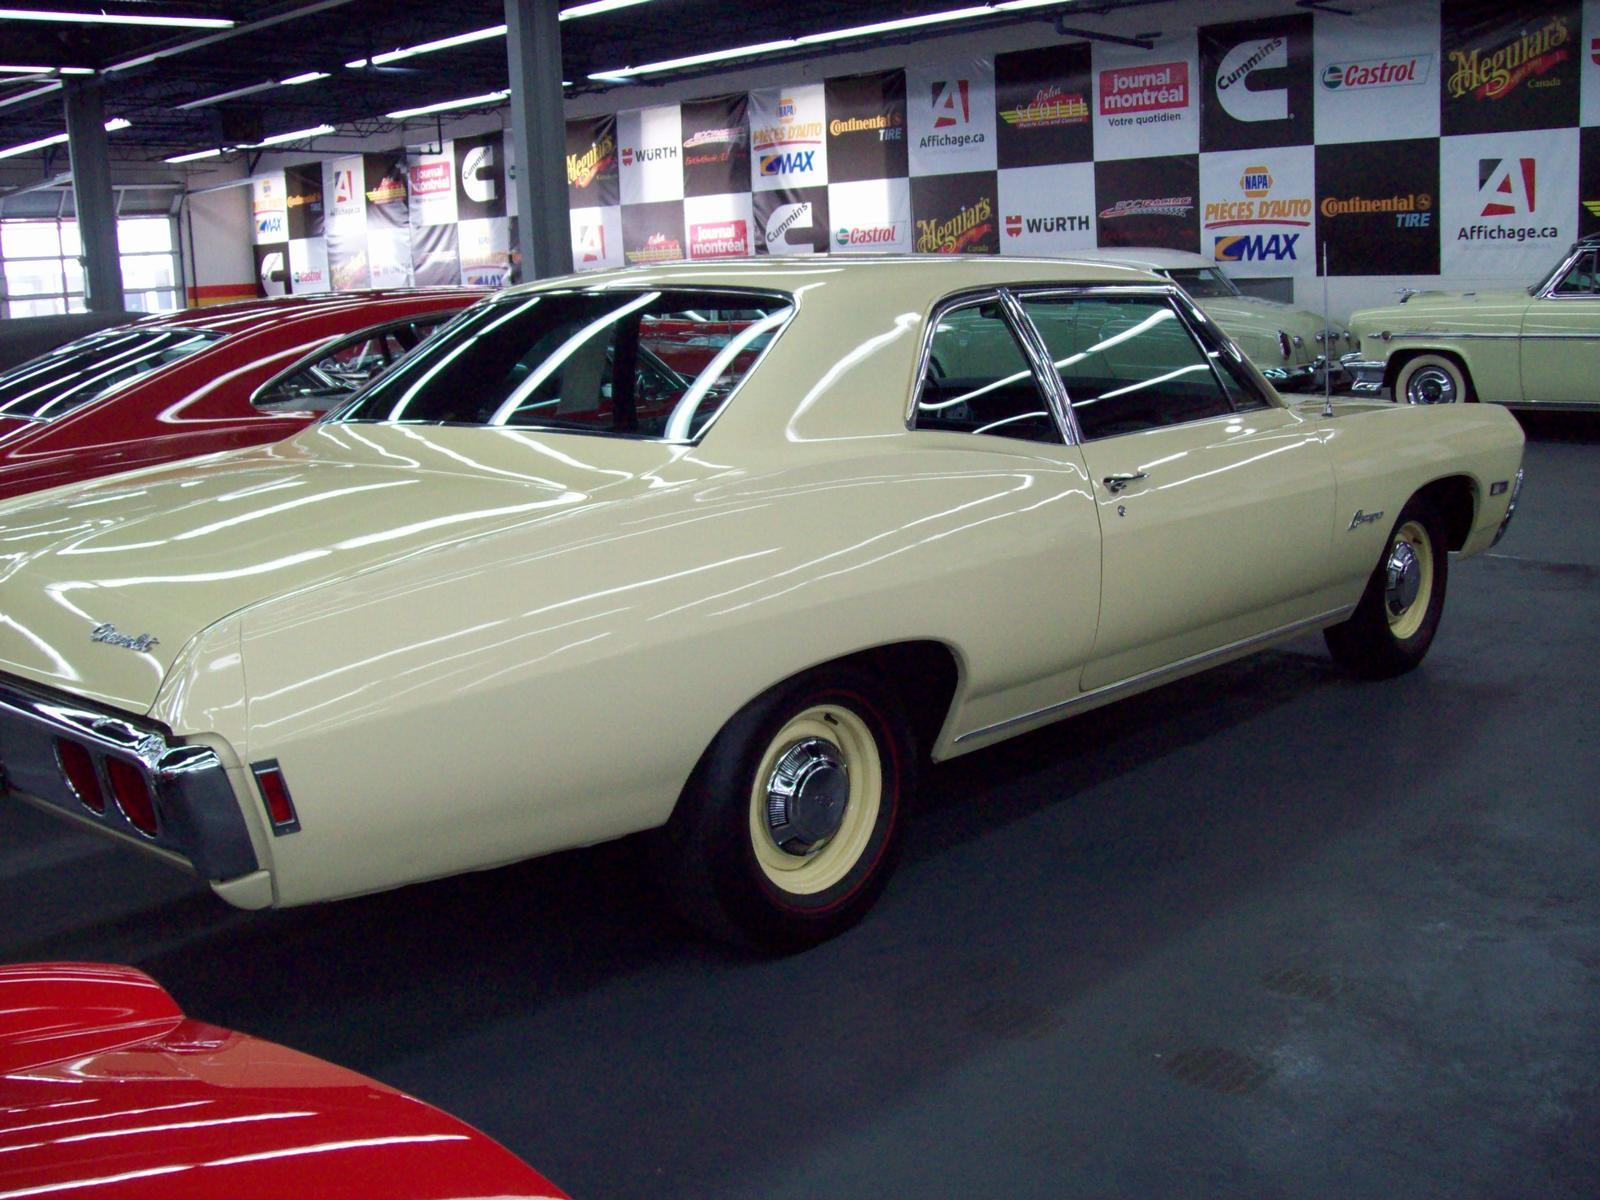 Used Chevrolet Biscayne For Sale John Scotti Classic Cars In Montreal 1968 Caprice 2 Door Request A Quote Today